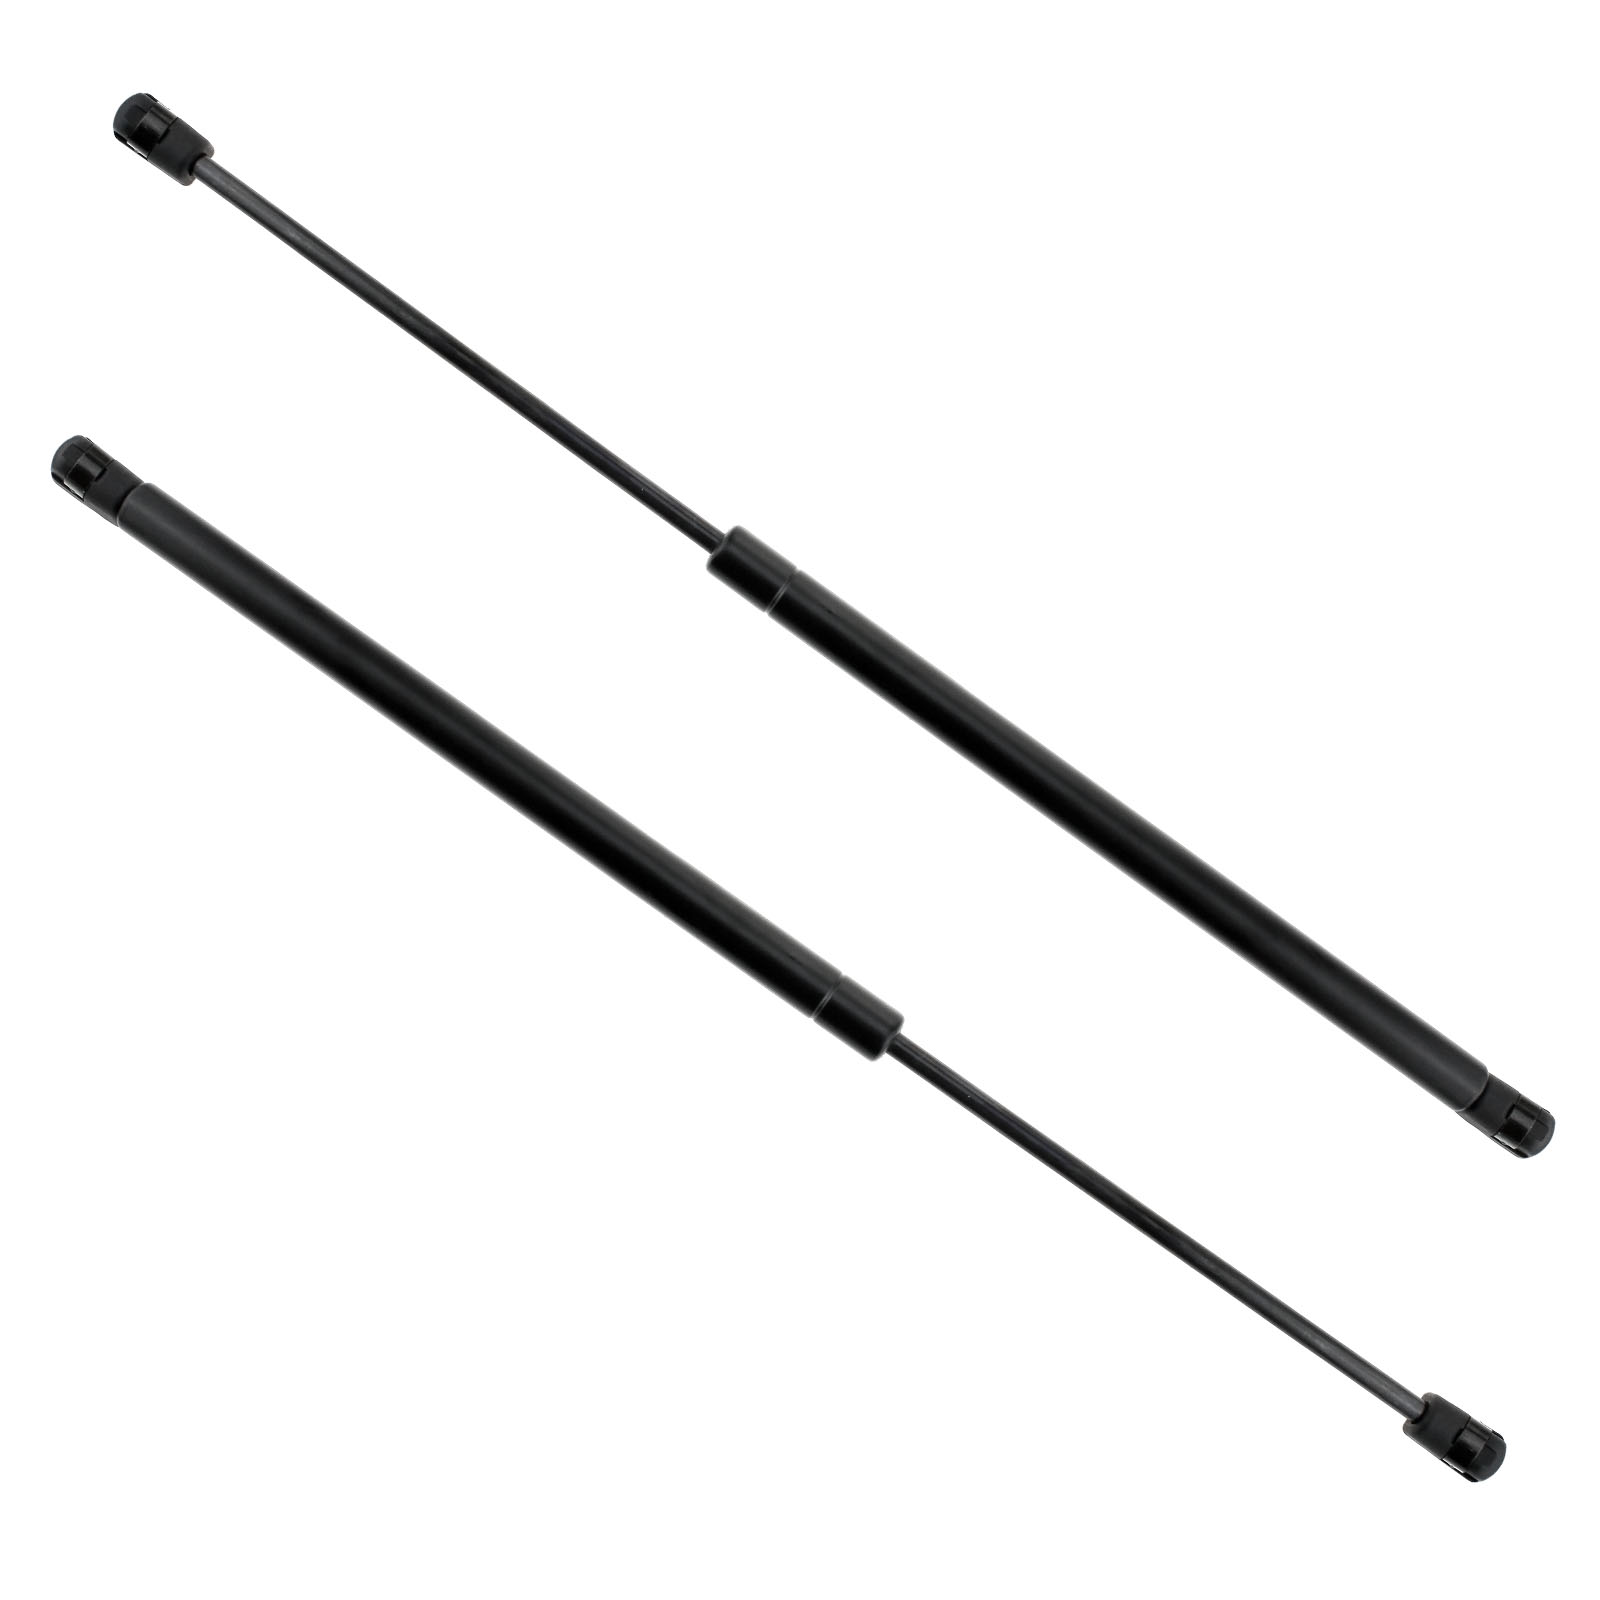 2 x tailgate boot struts gas springs holder set for